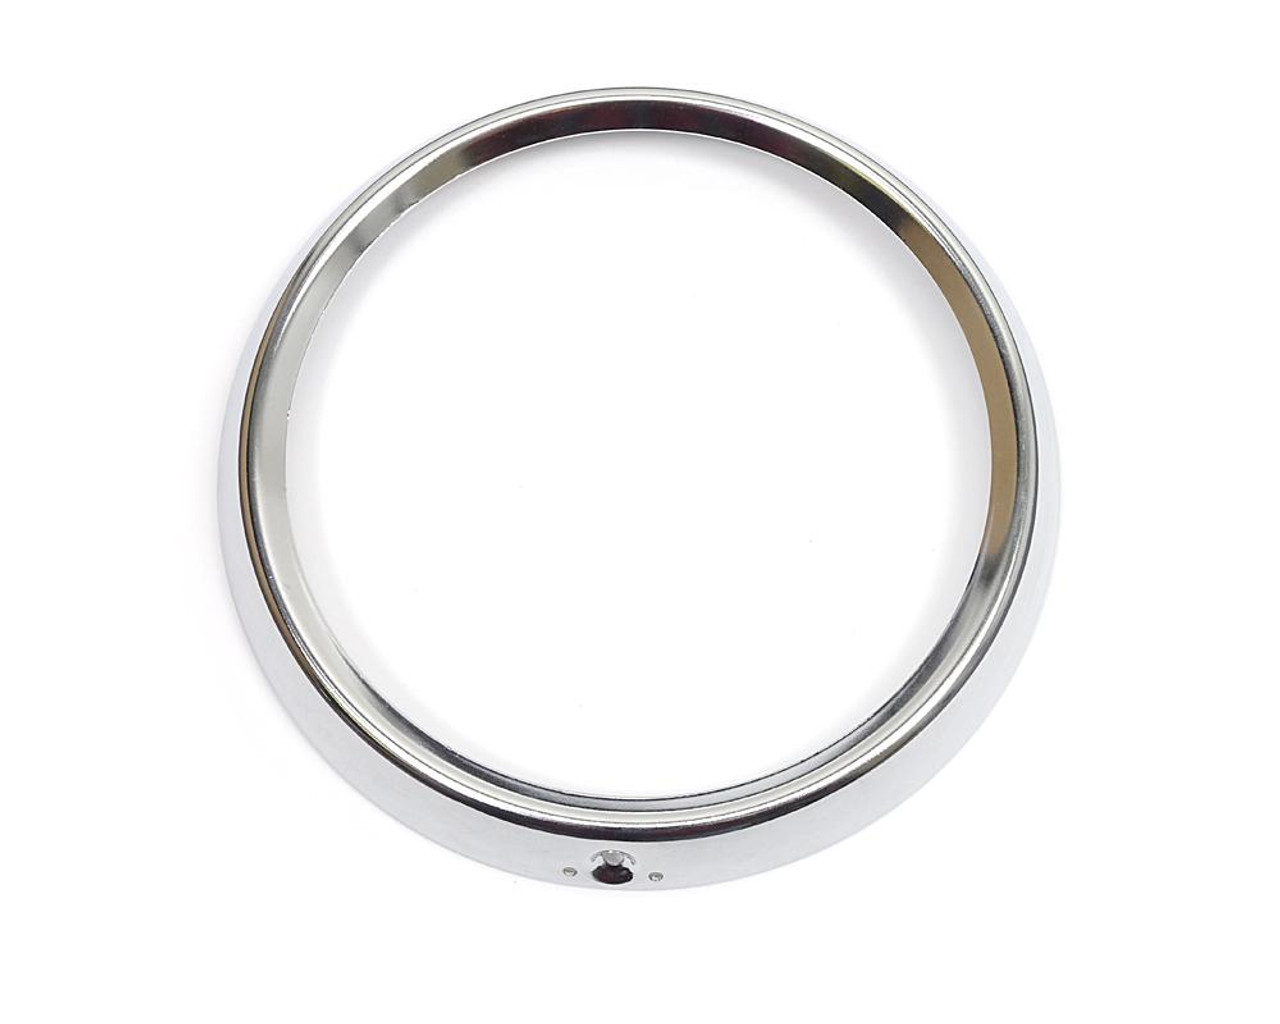 Head Light Trim Ring - 1970-85